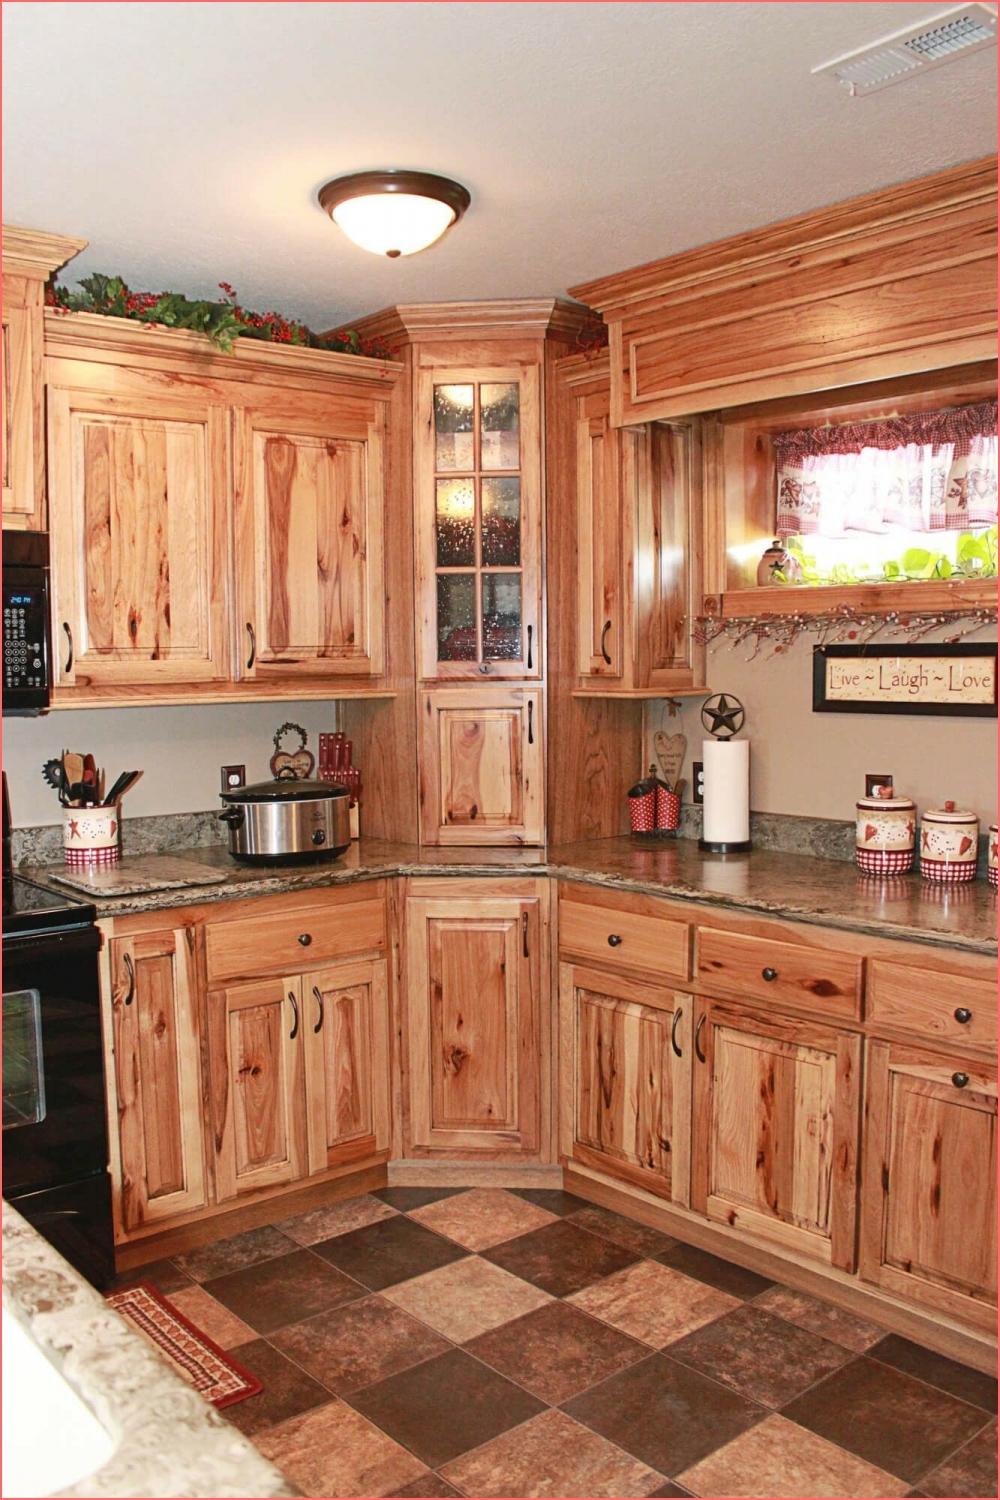 Hickory kitchen cabinets on rustic hickory kitchen cabinets on rustic hickory kitchen cabinets post on 2020-11-24 16:13:23